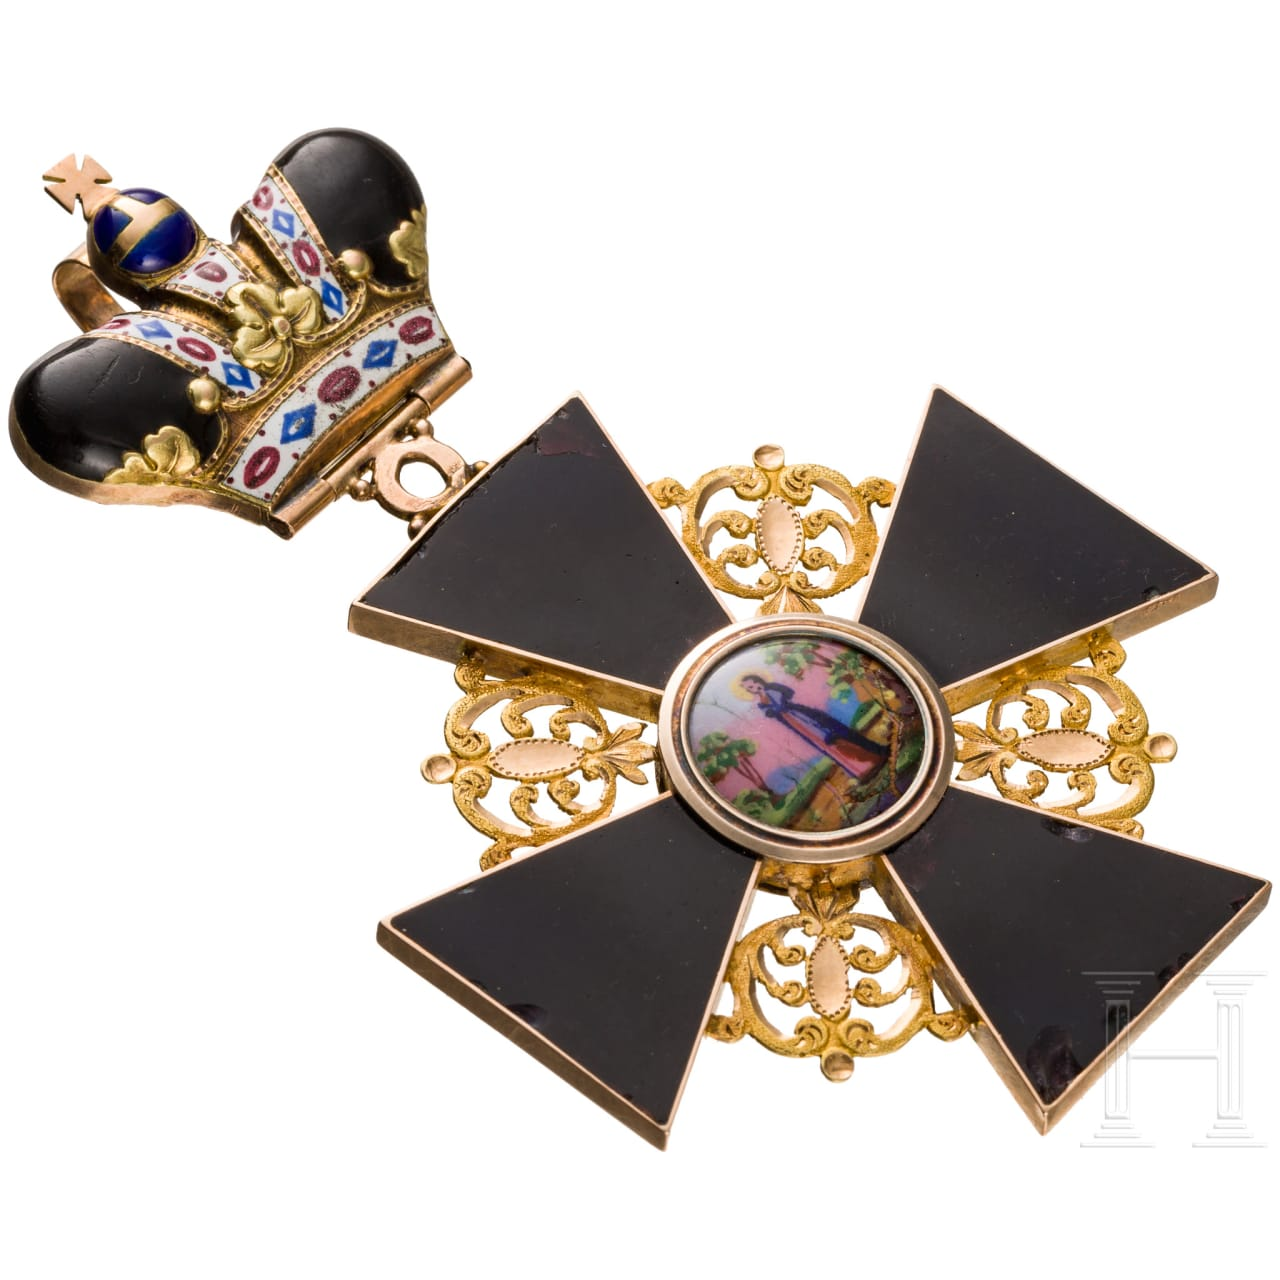 A Russian Order of St. Anna, 1st class cross with crown, dated 1867